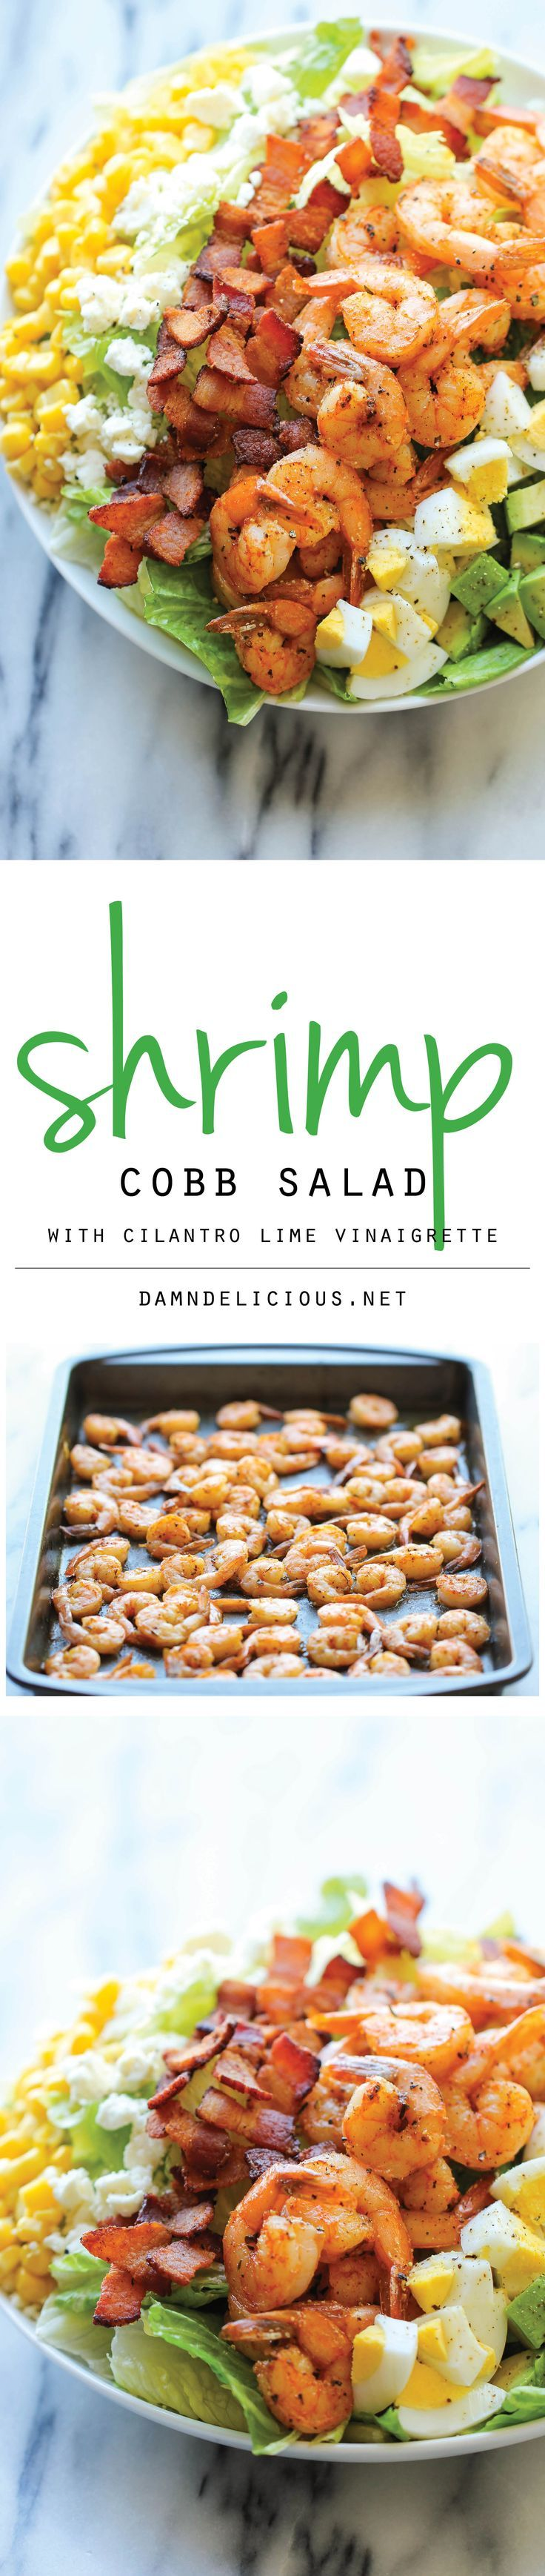 Shrimp Cobb Salad   A light  filling salad loaded with roasted shrimp  bacon bits  and avocado in a tangy  refreshing vinaigrette